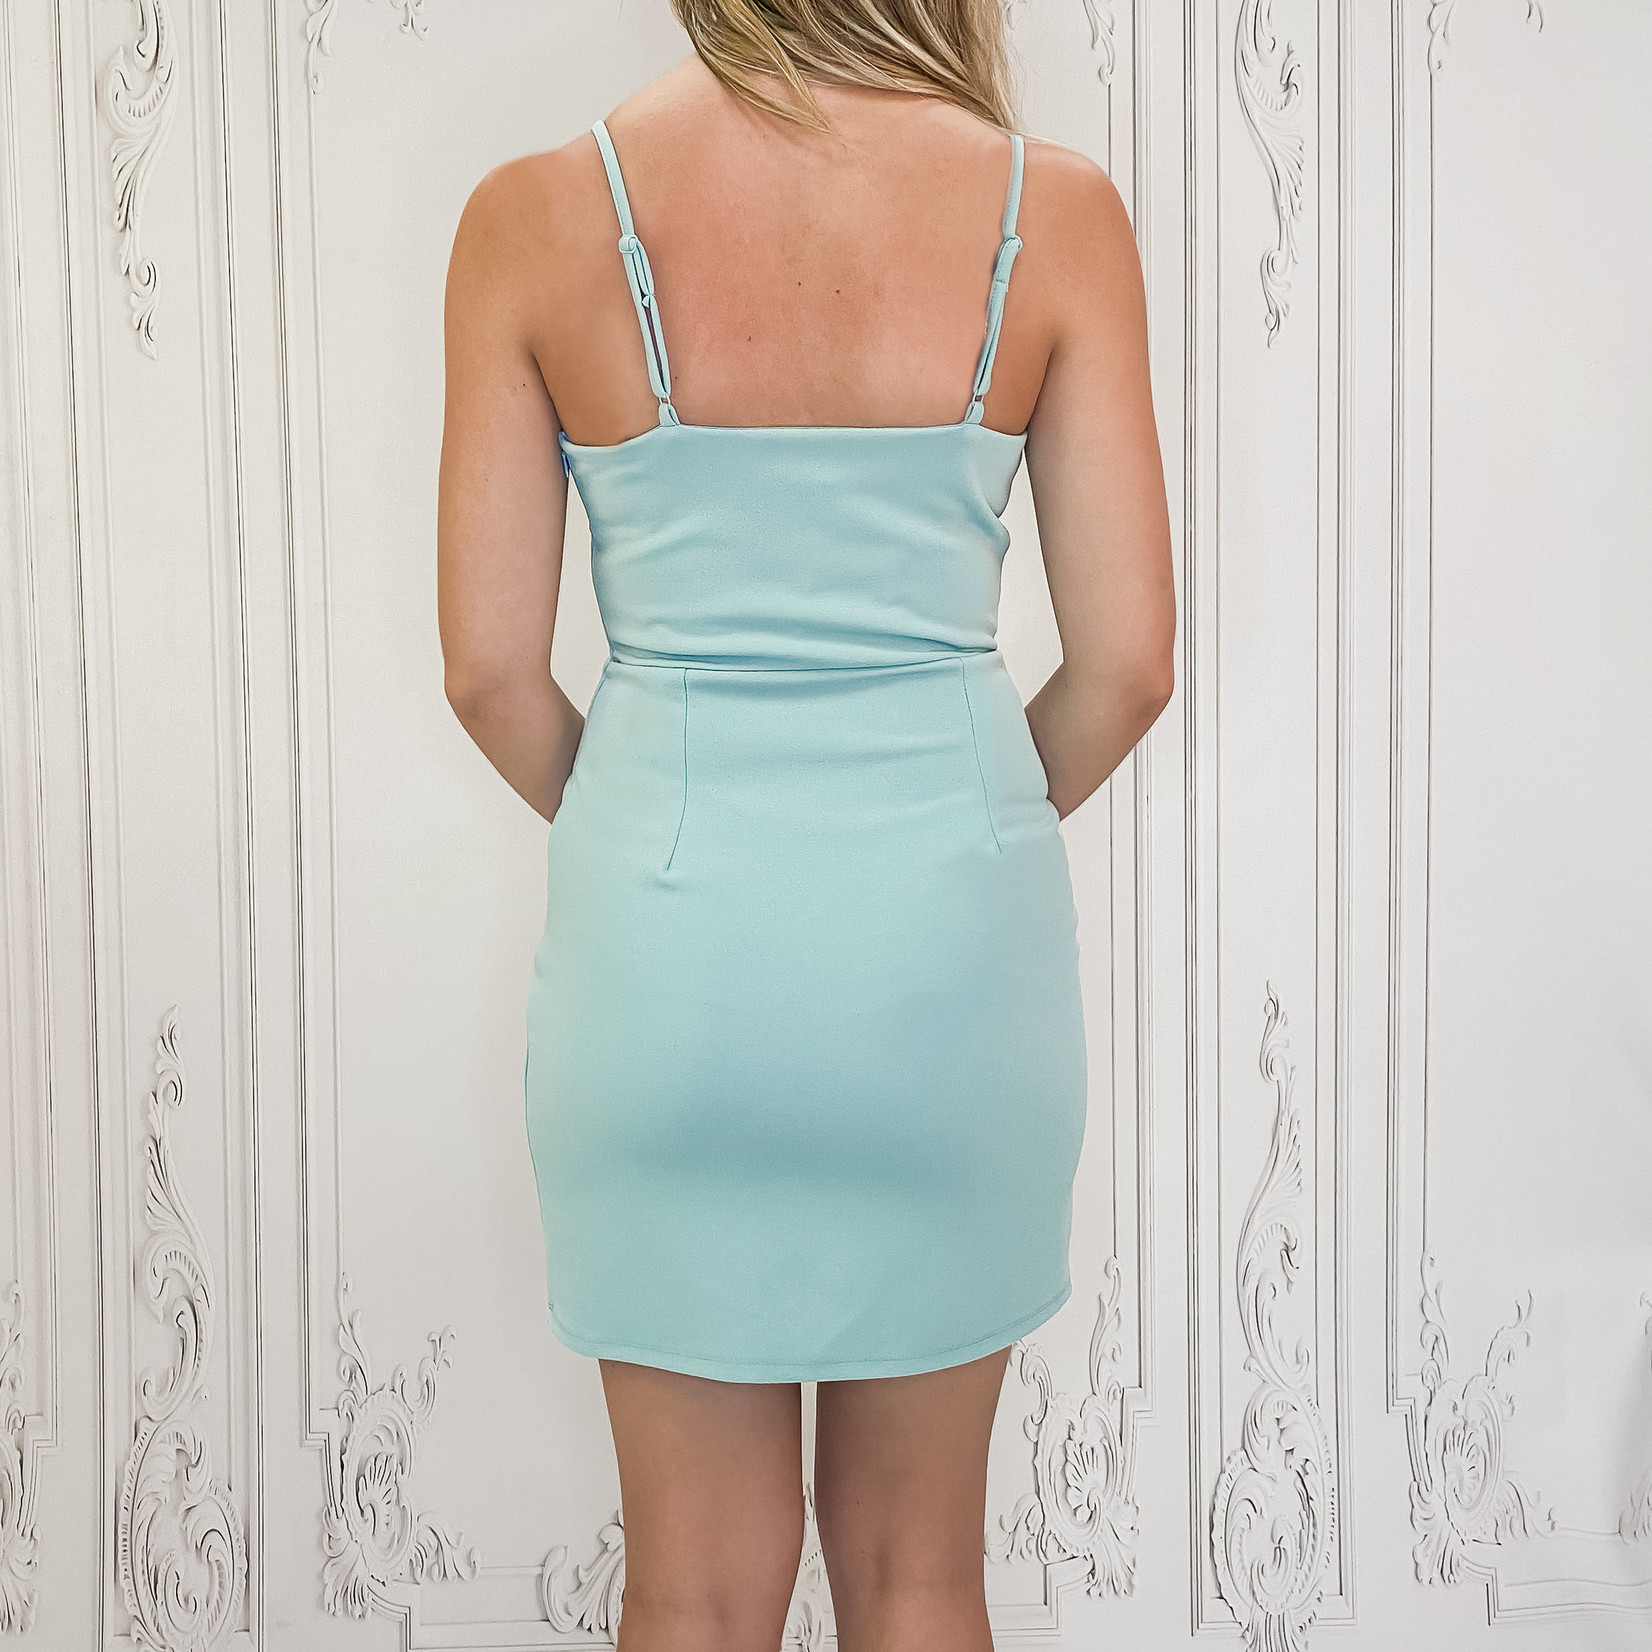 Serenity double lined cami dress